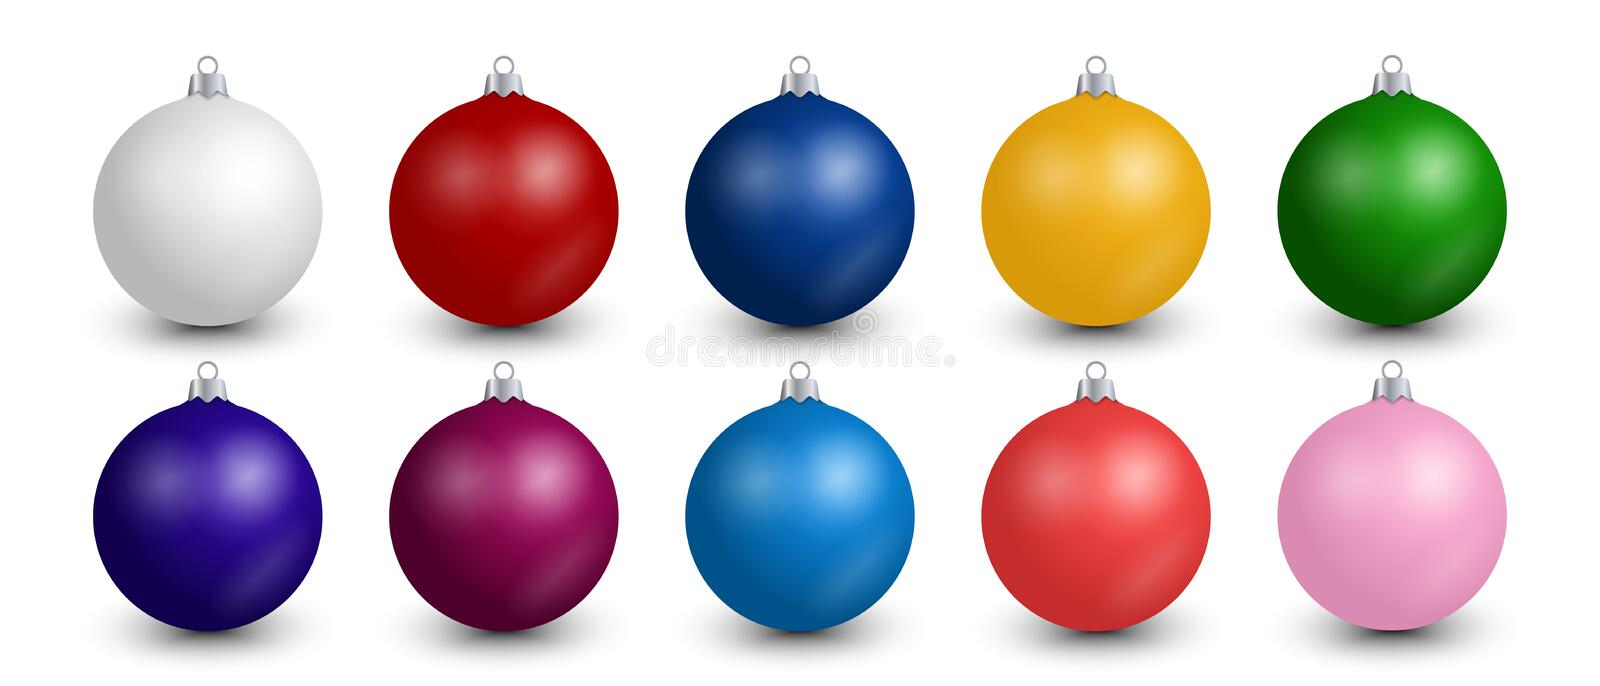 Realistic Christmas balls collection. Set of colorful festive decoration for Christmas tree isolated on editable white background stock illustration